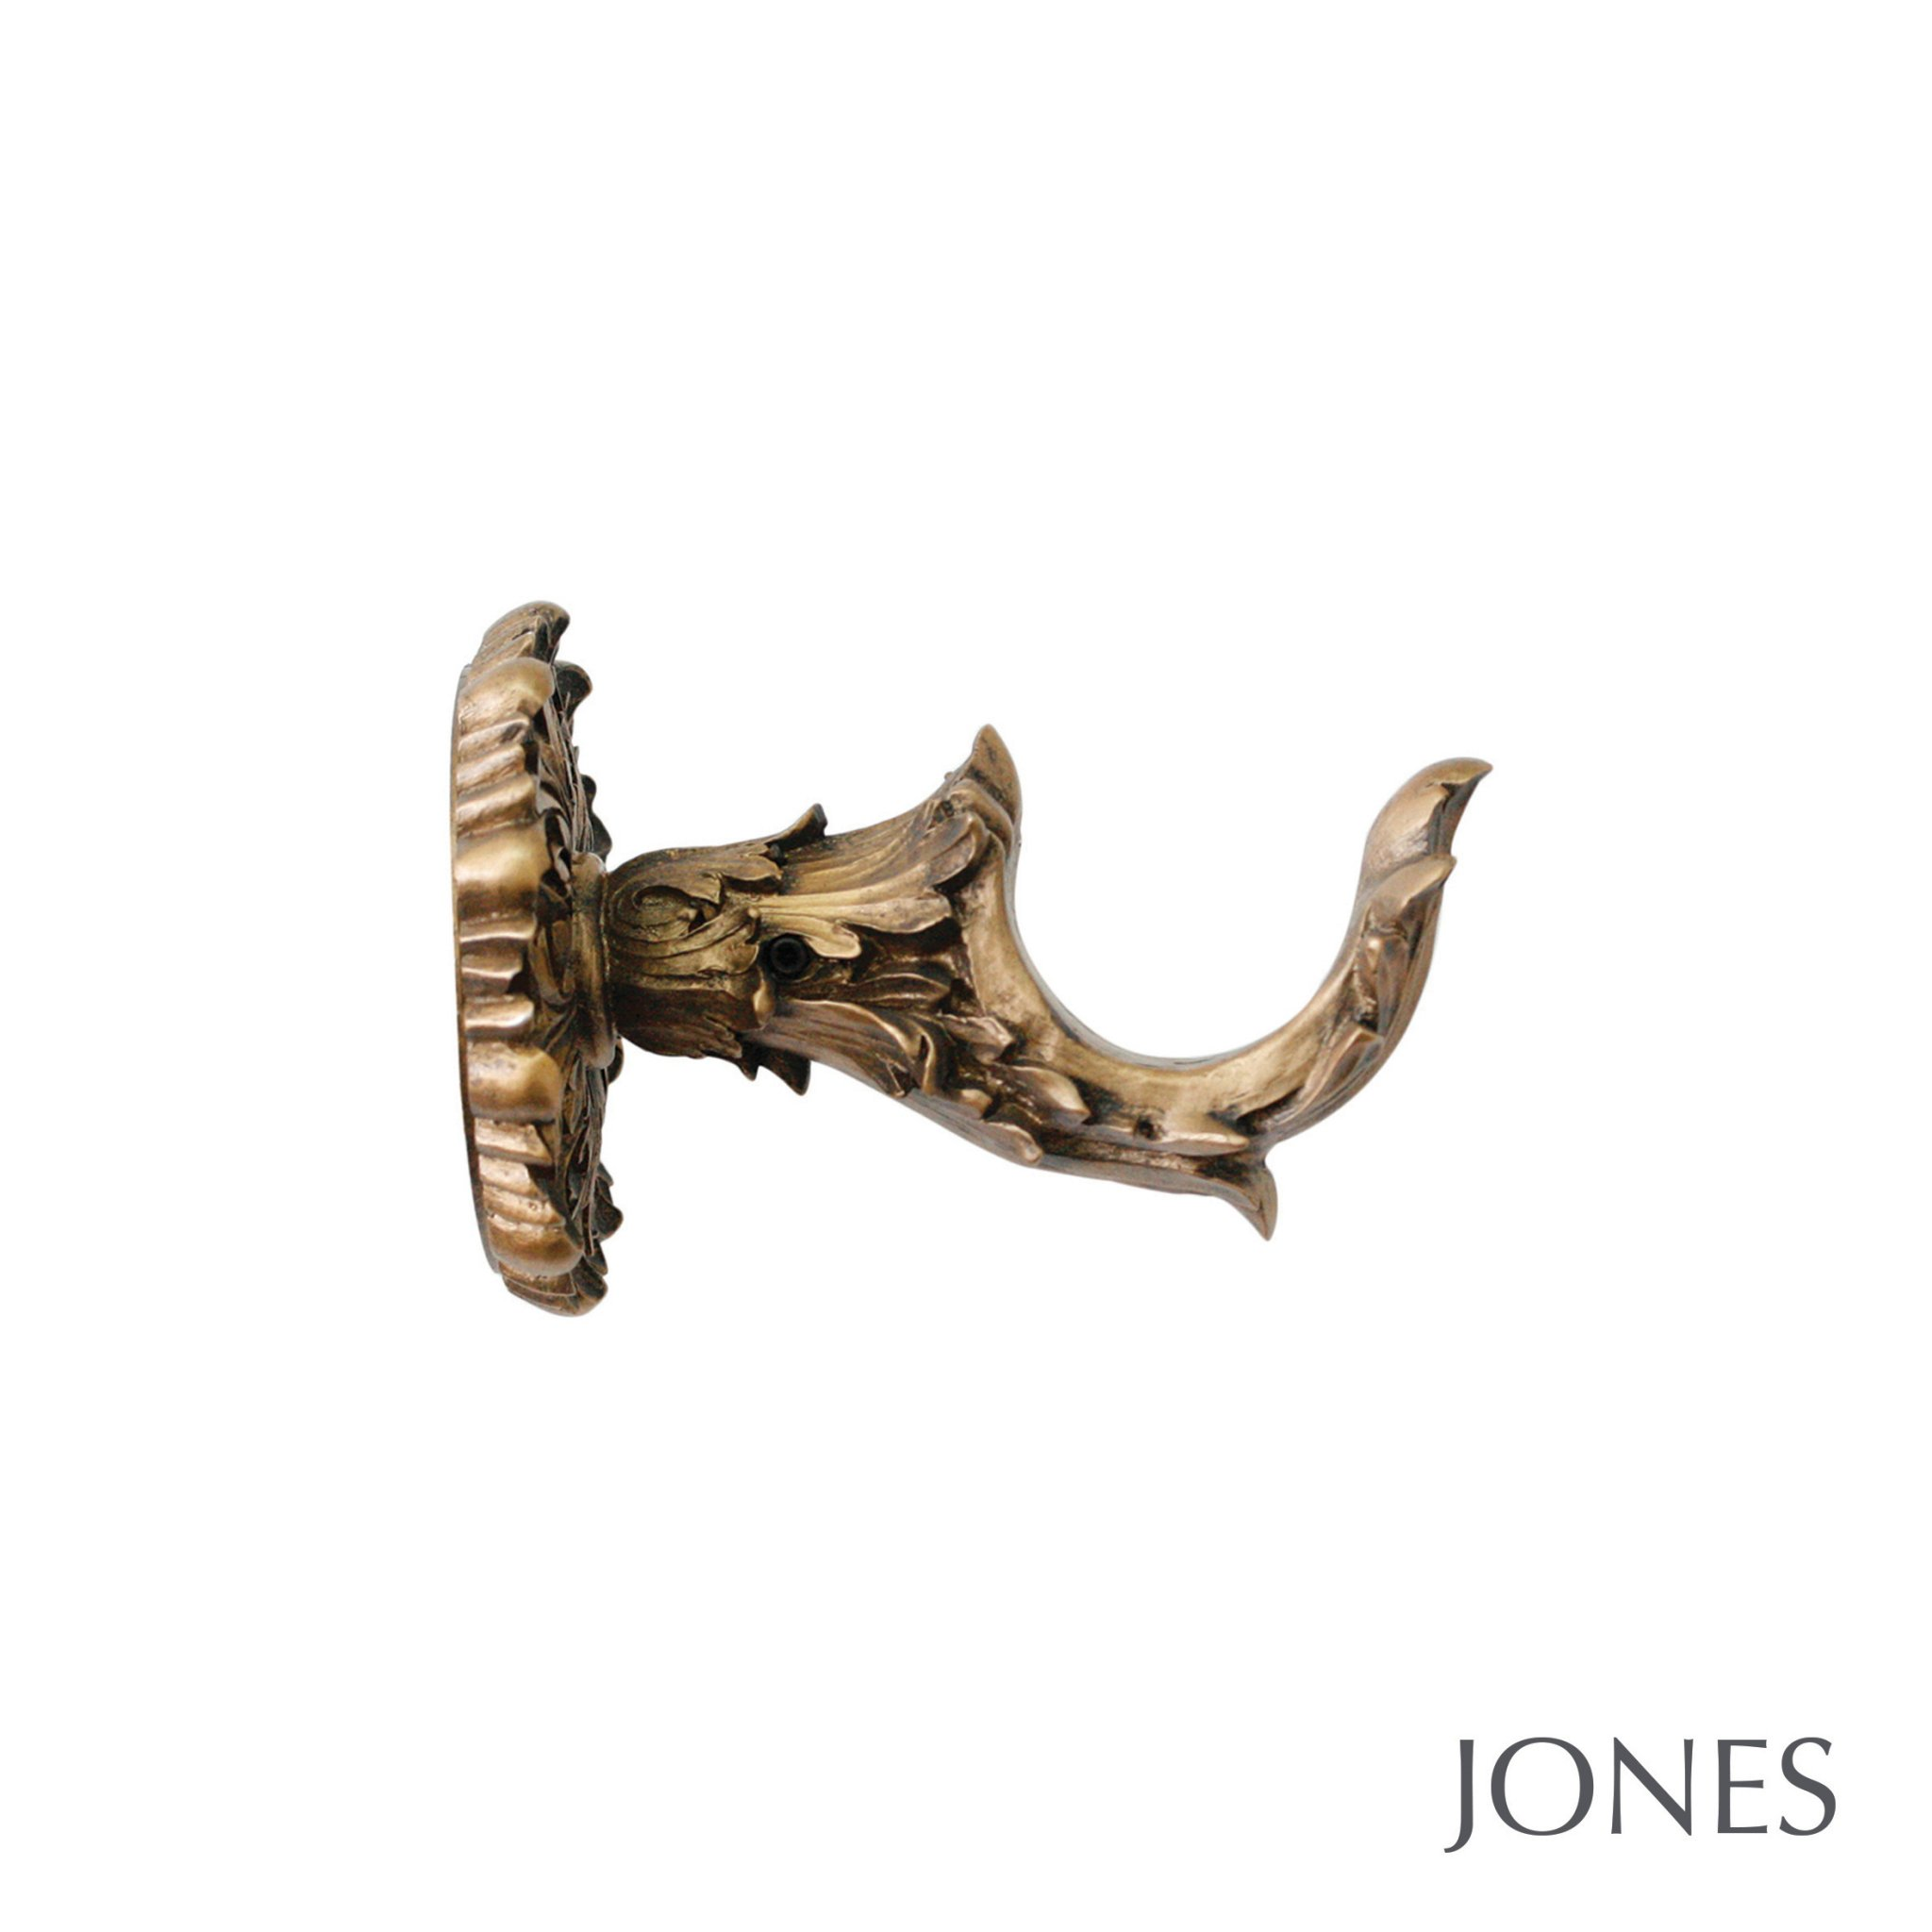 Jones Florentine Handcrafted 50mm Acanthus Brackets